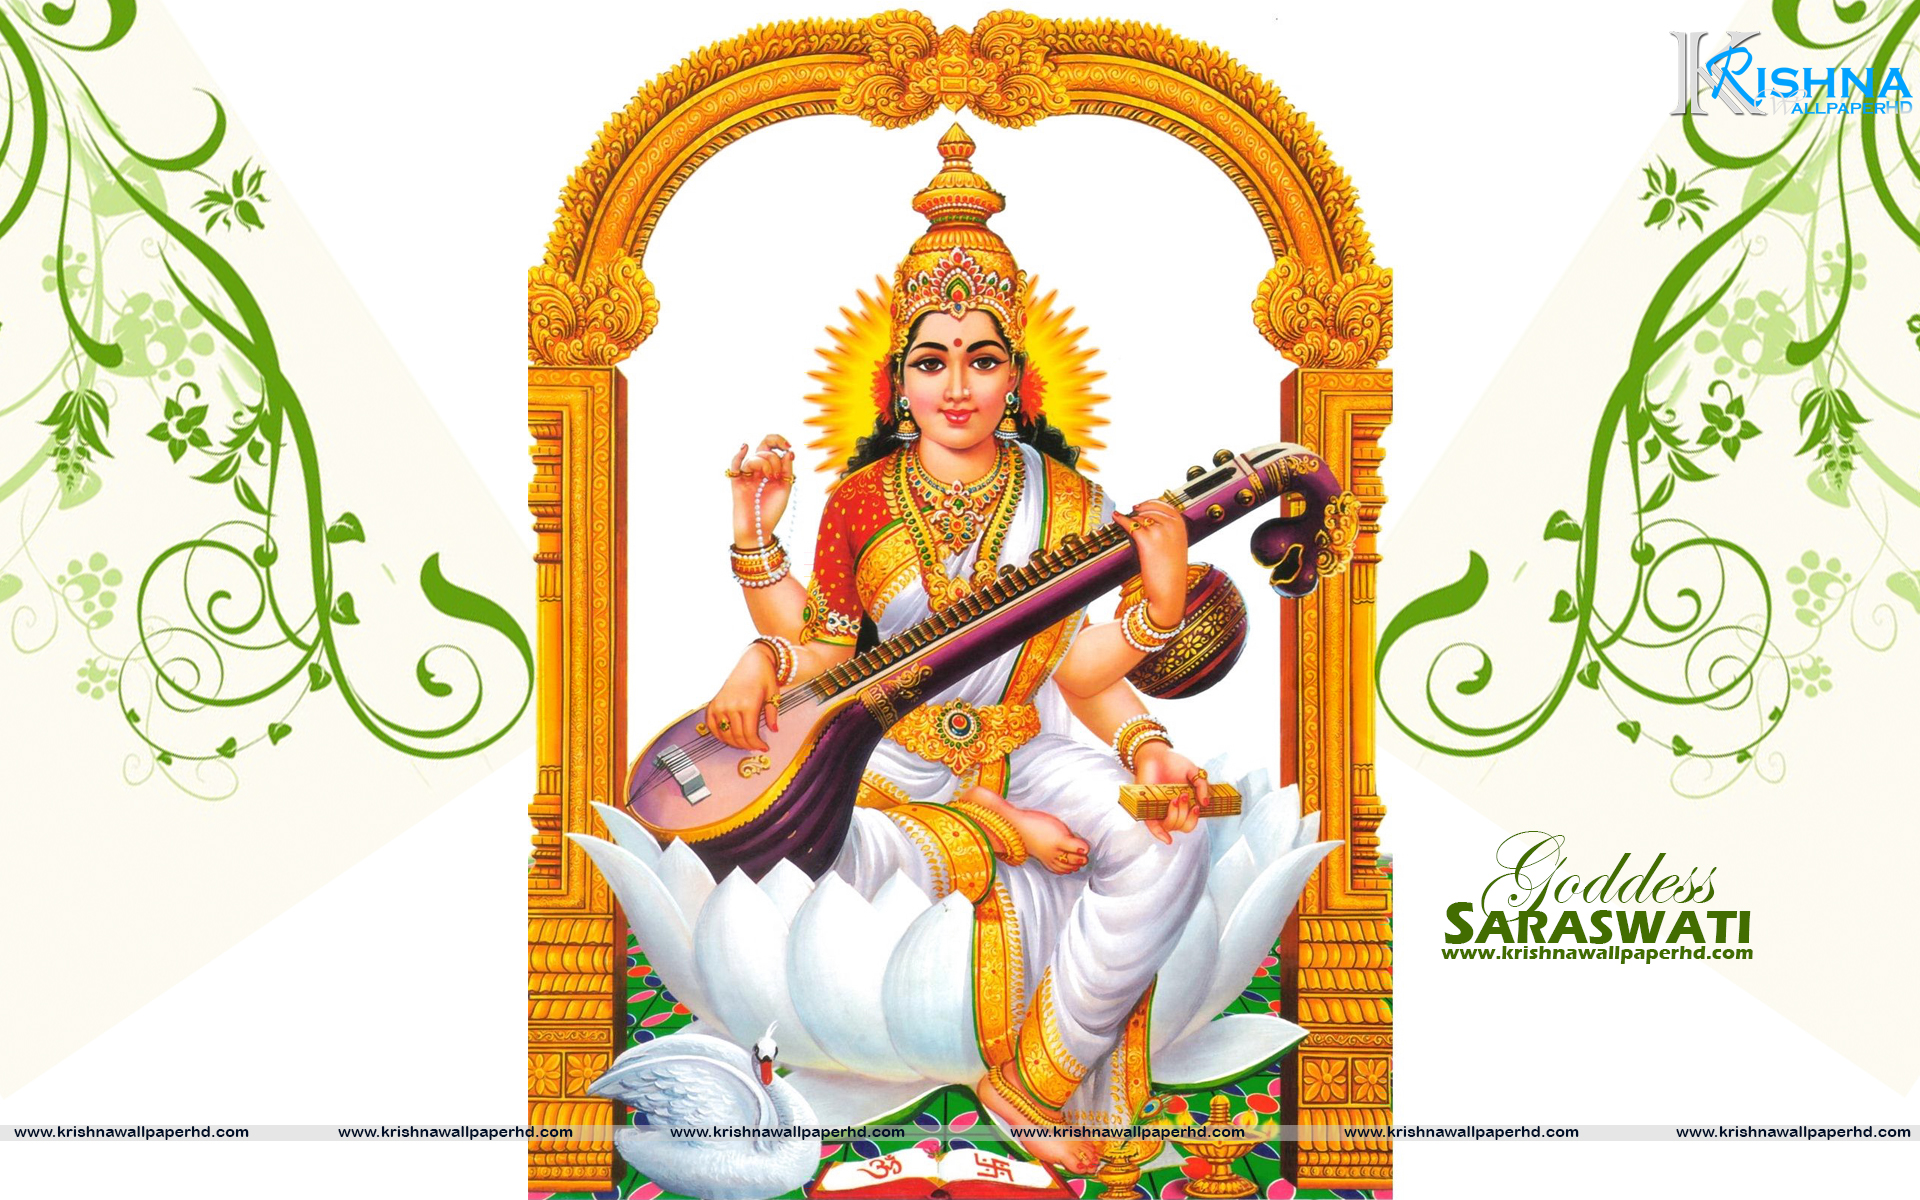 Goddess Saraswati Wallpaper in Full HD Size Free Download